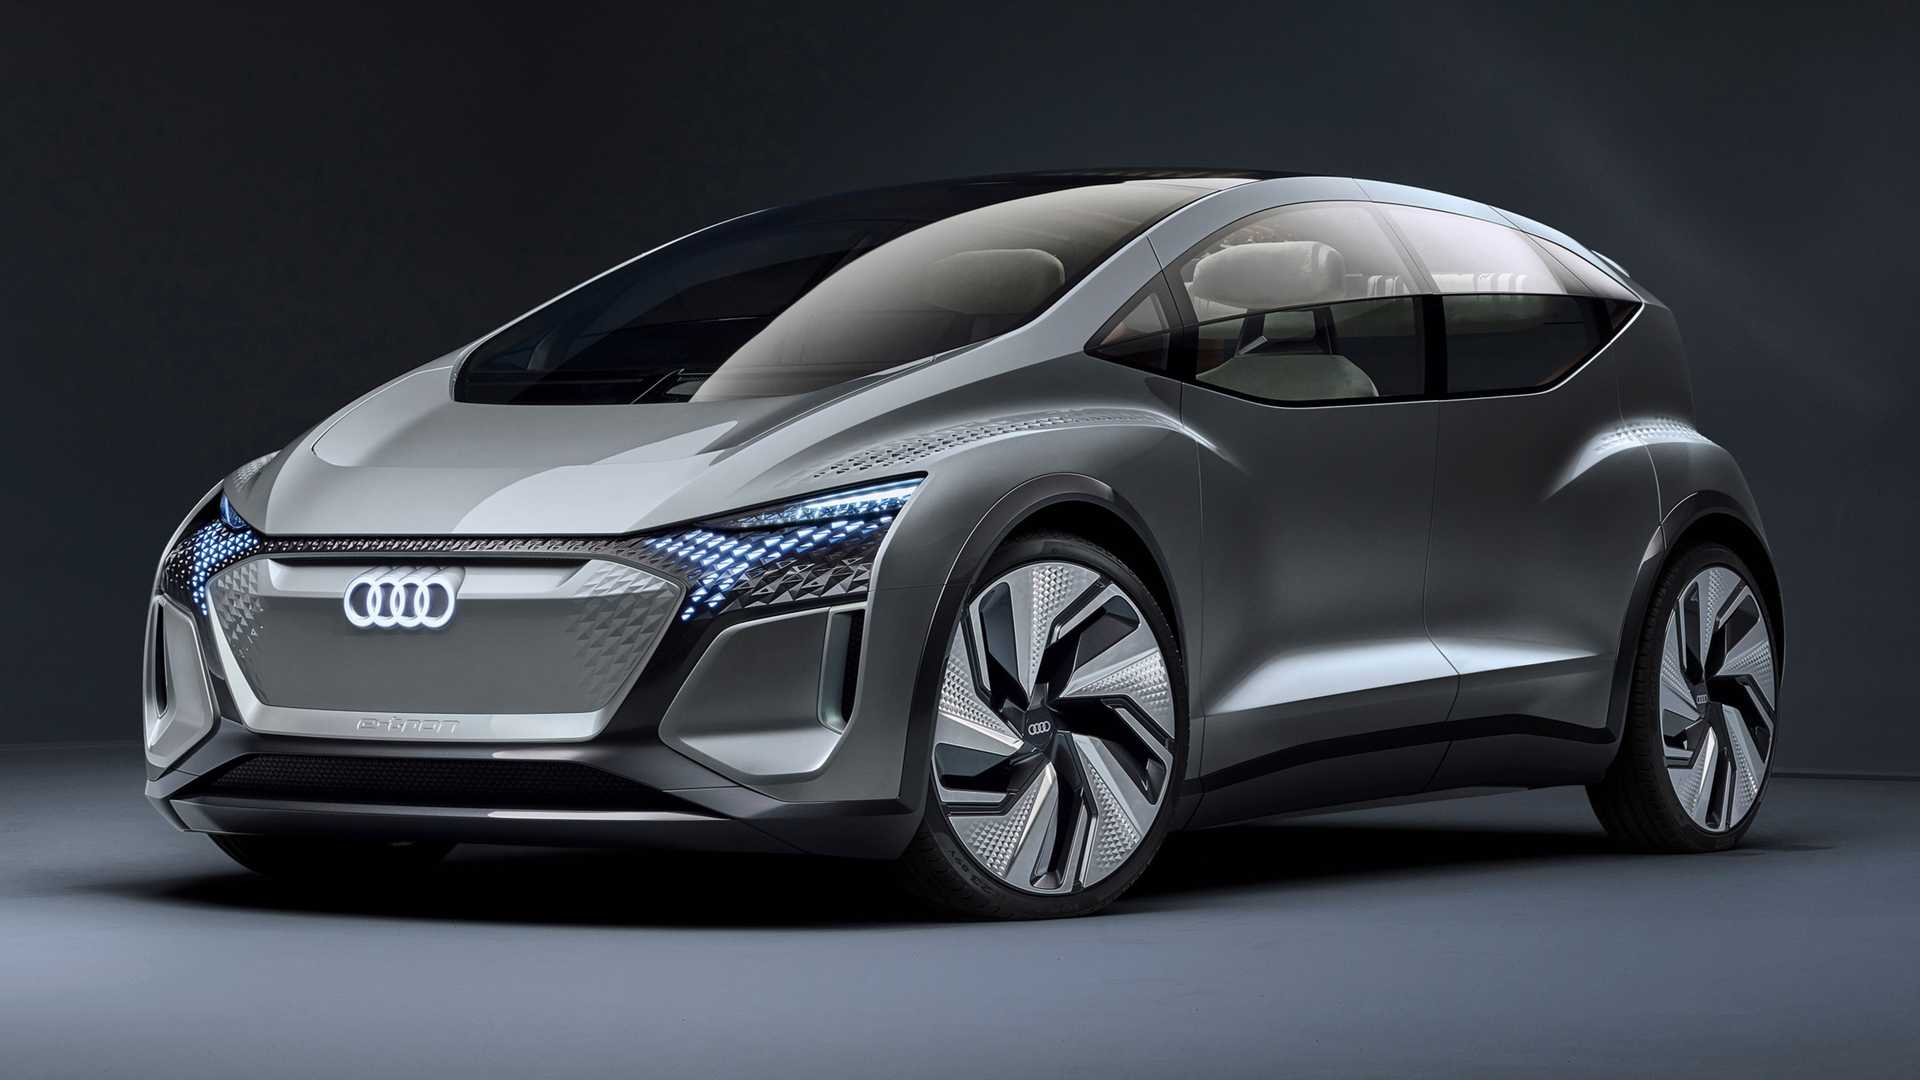 Audi has revealed all there was to reveal about its upcoming compact urban EV called the AI: me